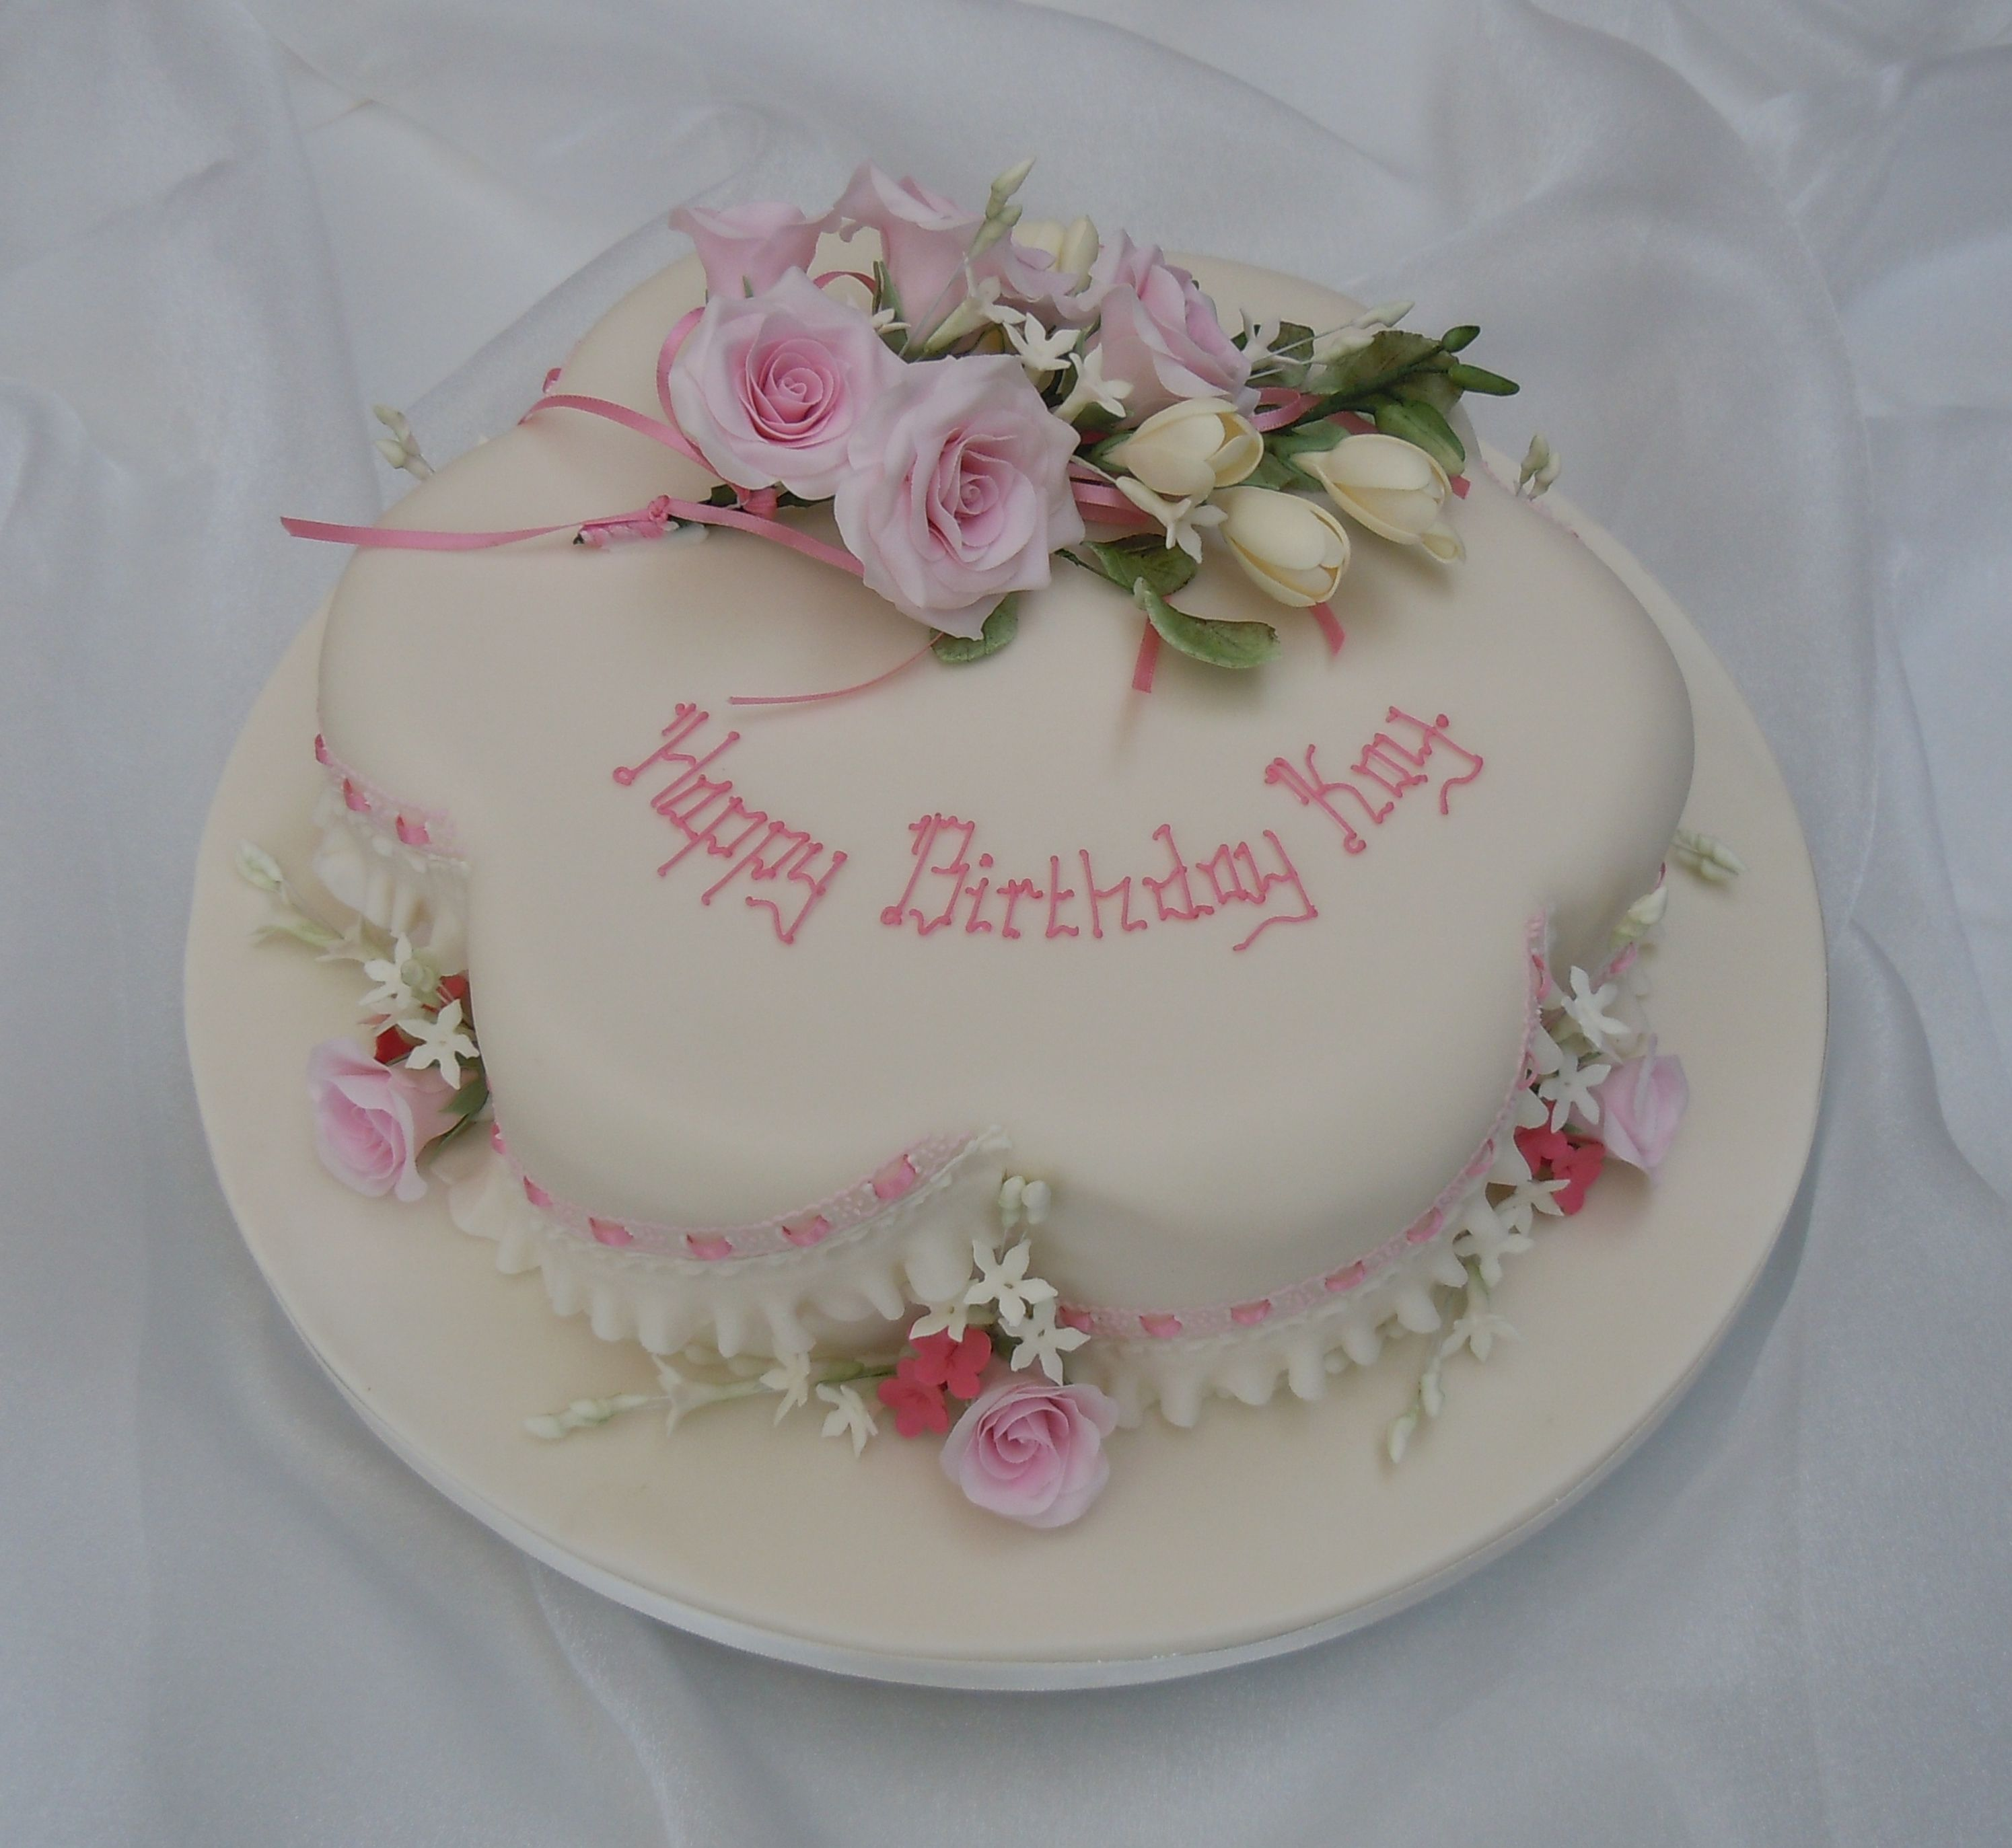 Petal Shaped Birthday Cake With Frill And Ribbon Insertion